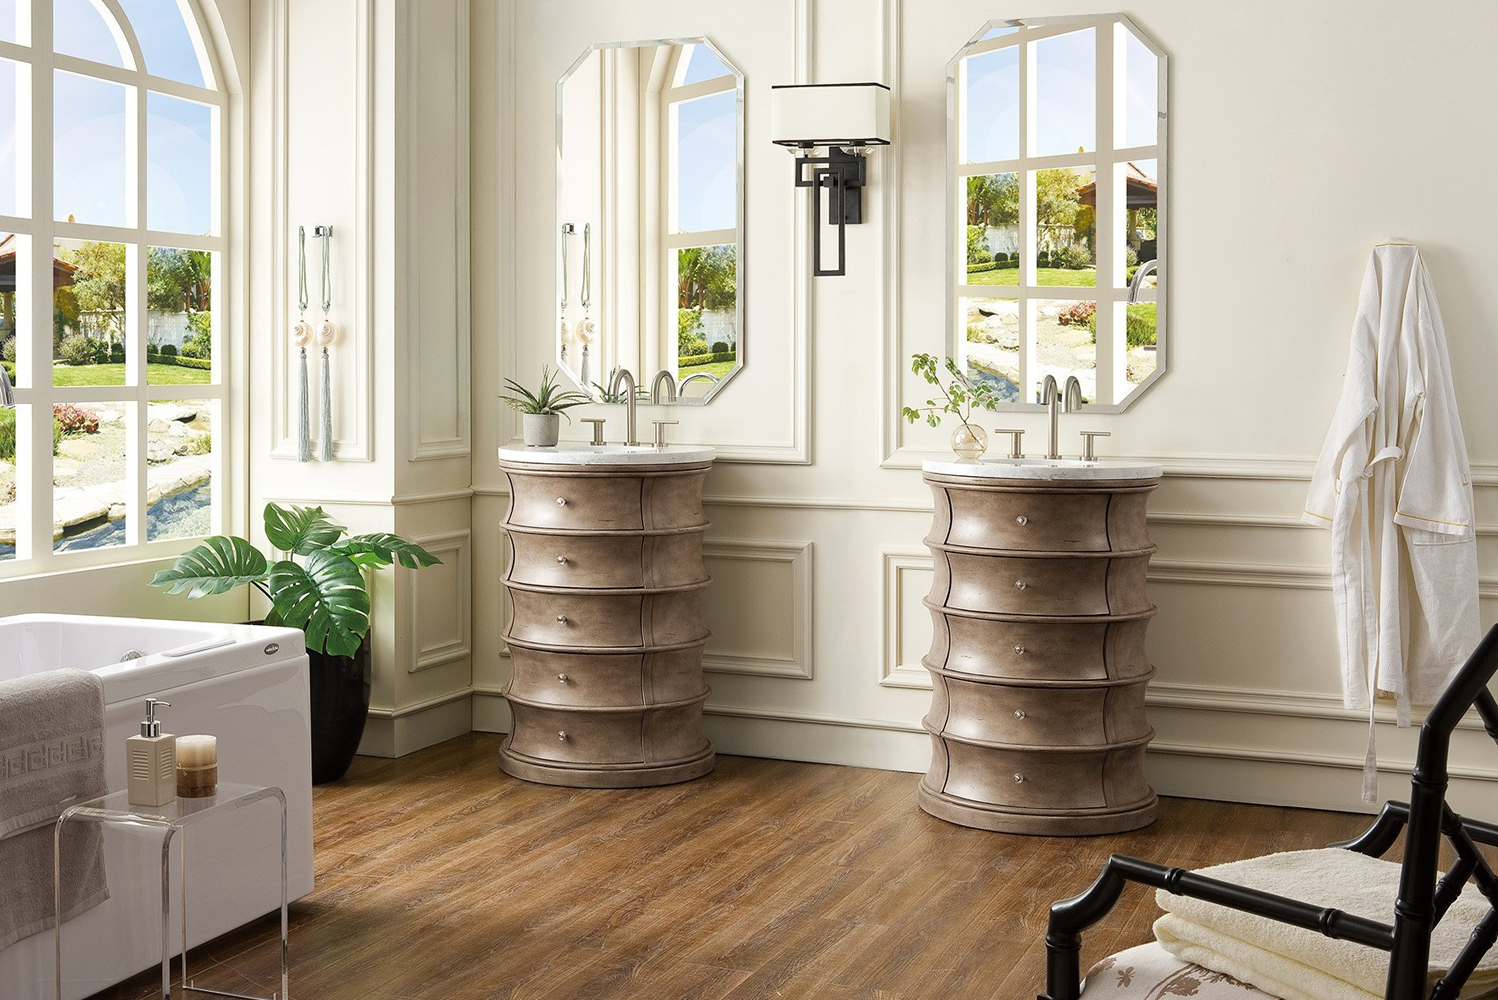 James Martin Furniture, manufacturer of bathroom vanity cabinets, launched the Cairns vanity.